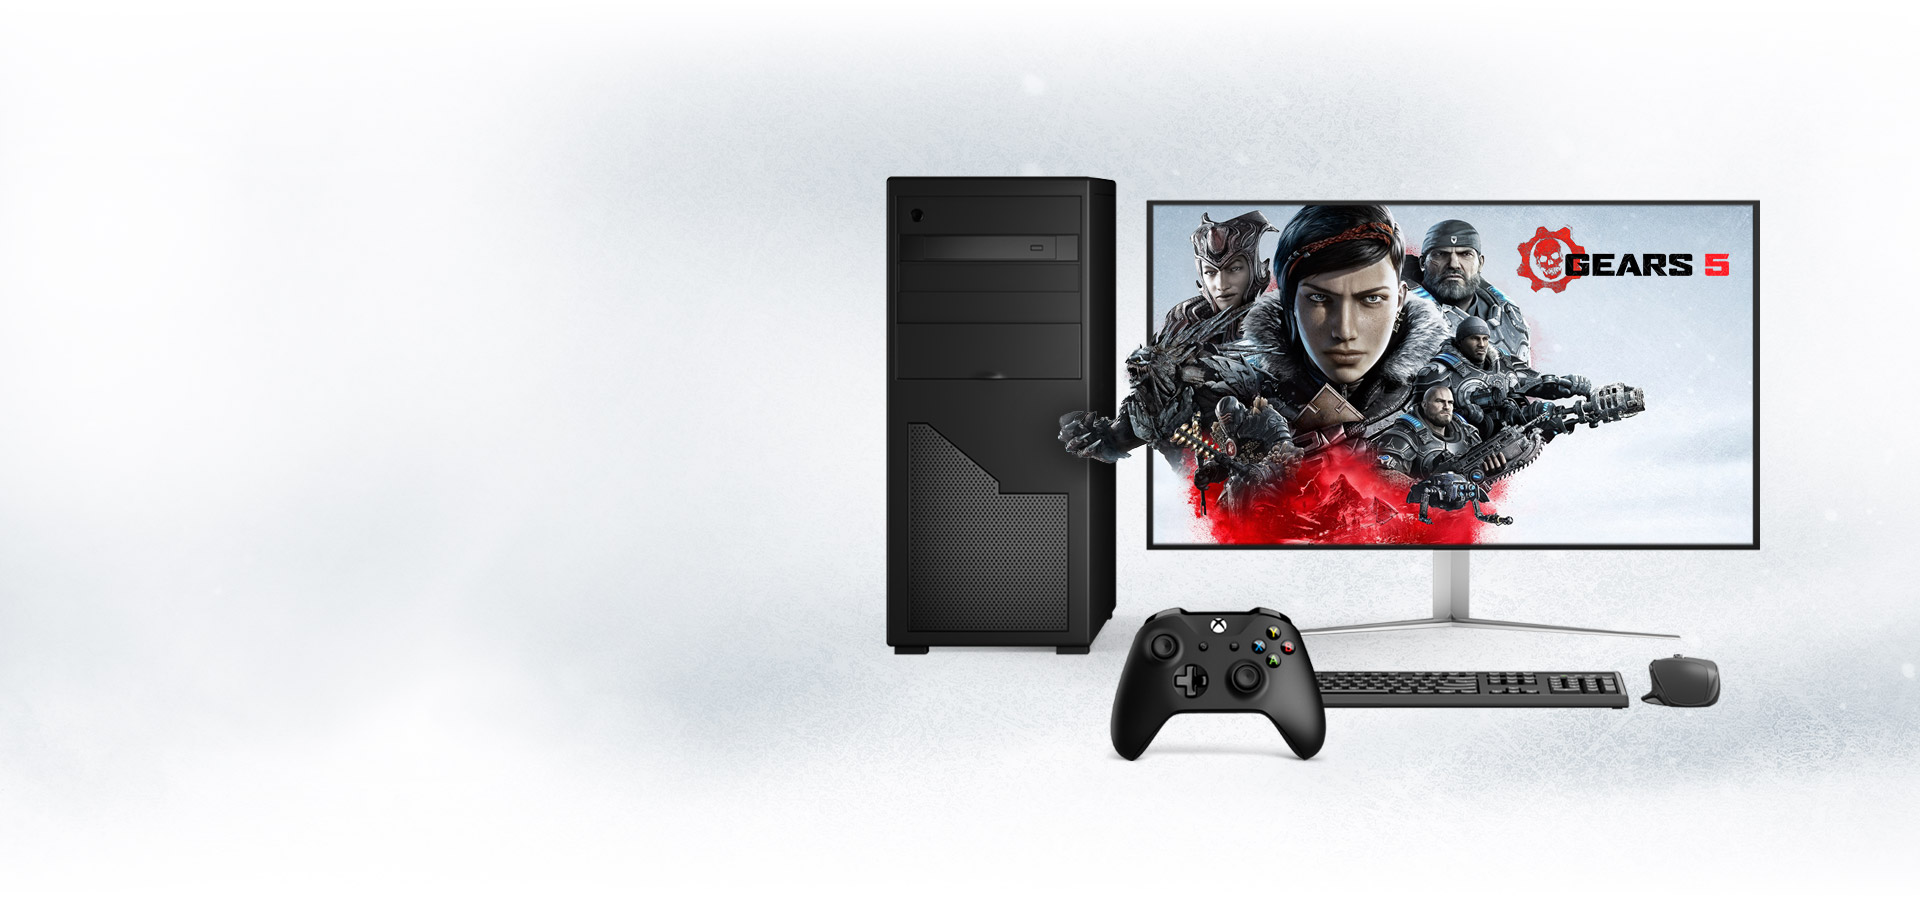 A gaming PC featuring Gears 5 key art on a snowy background